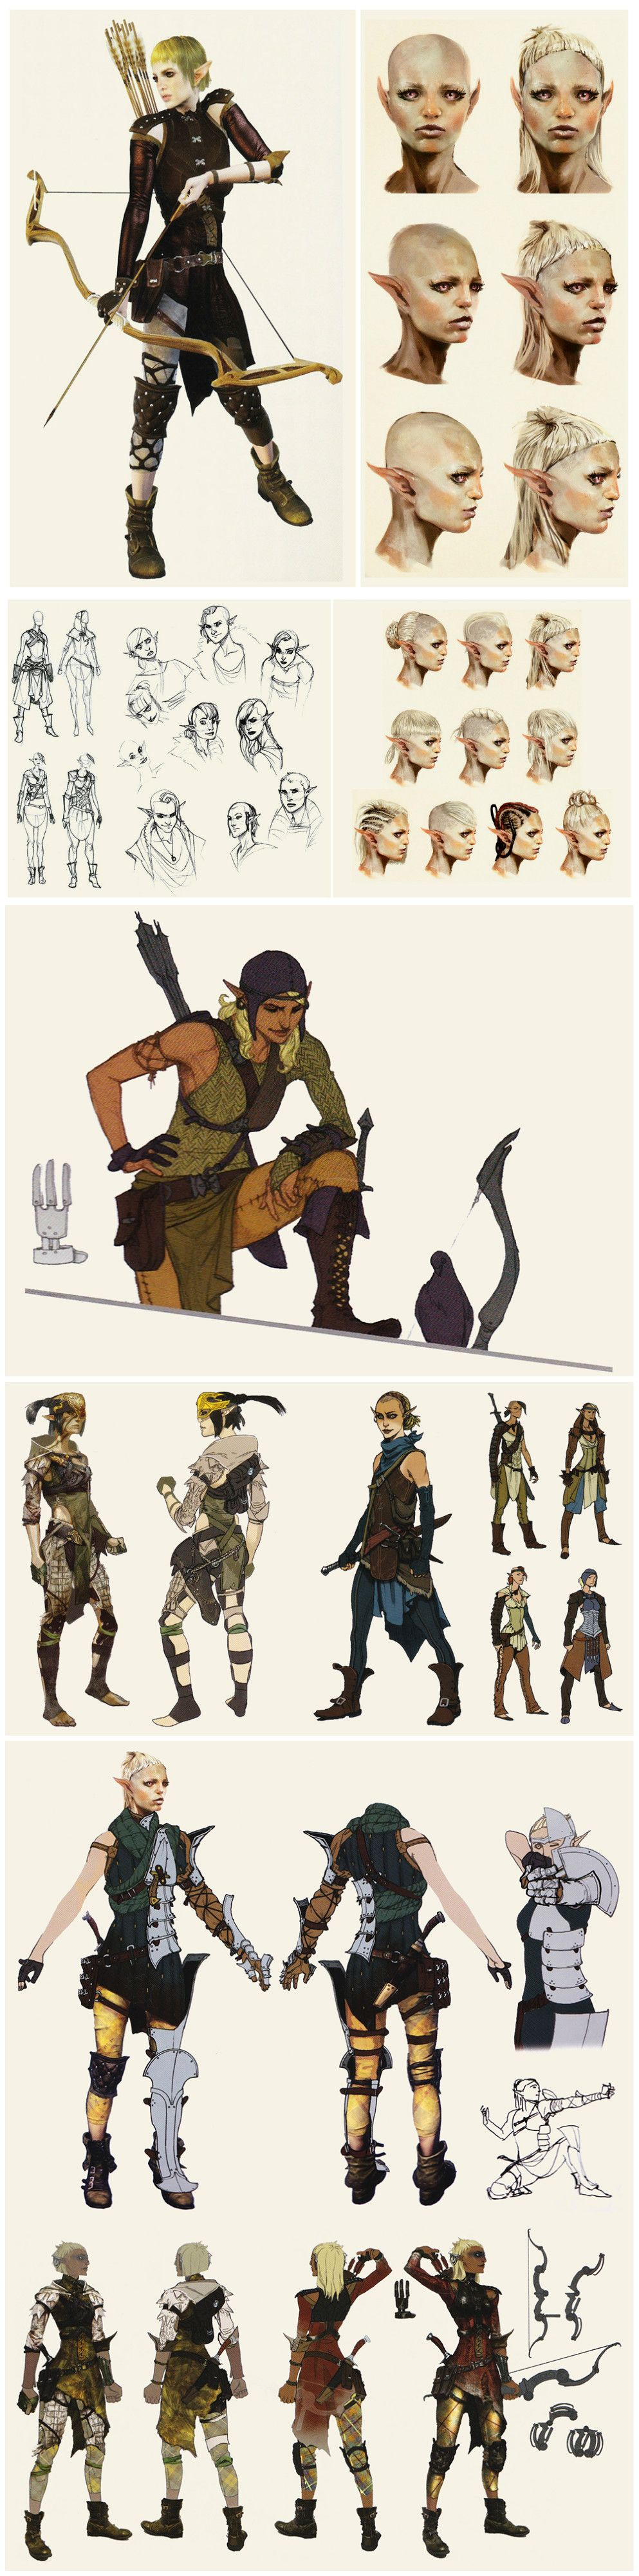 Sera S Concept Art In The Art Of Dragon Age Inquisition Character Design Dragon Age Concept Art Characters